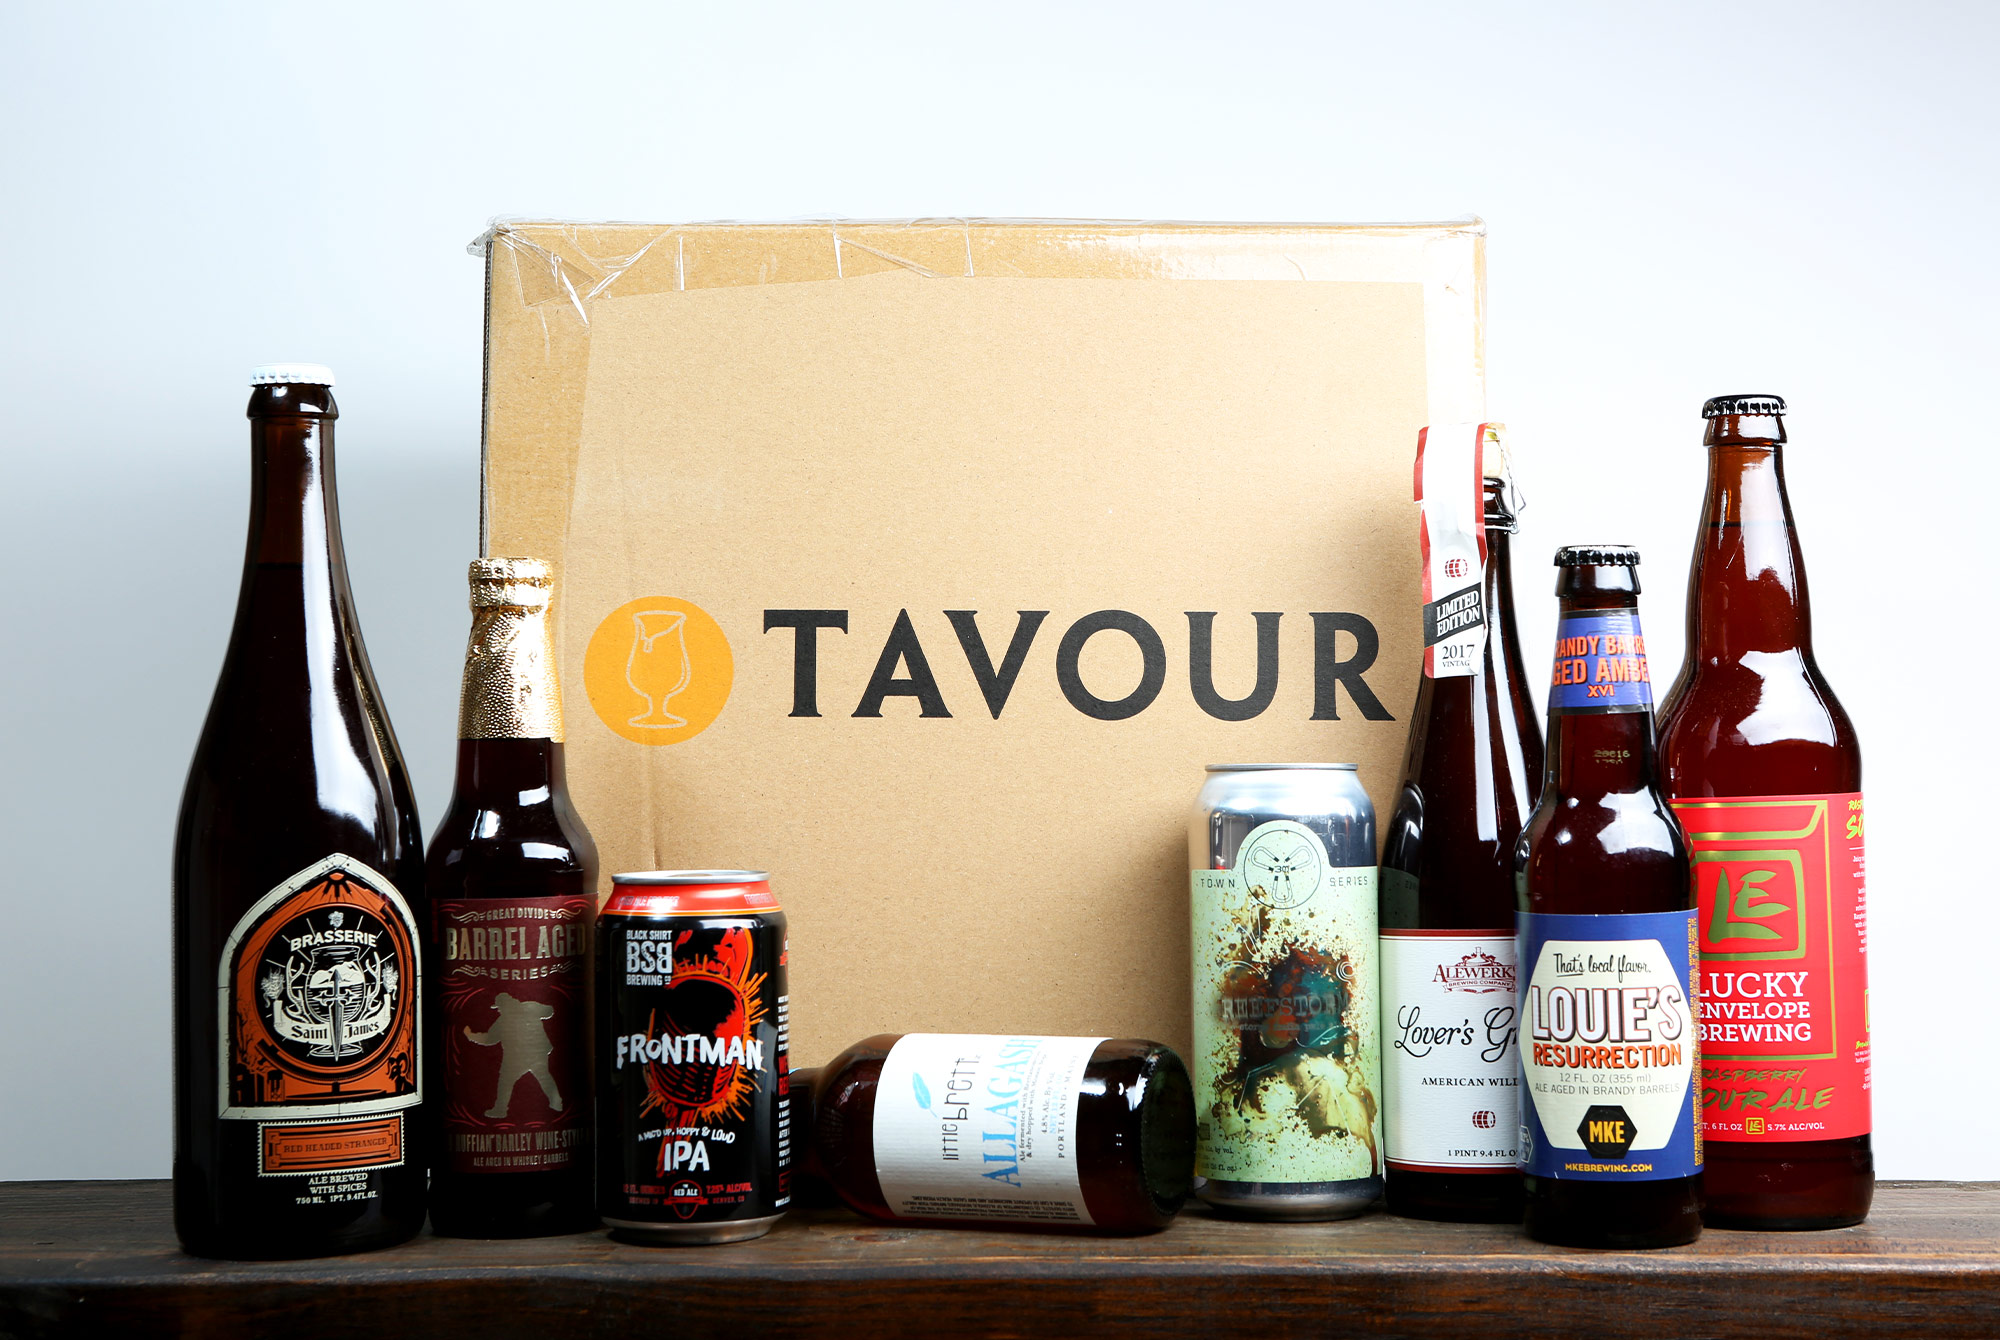 Tavour's Beer Delivery Service Specializes in Experimentation